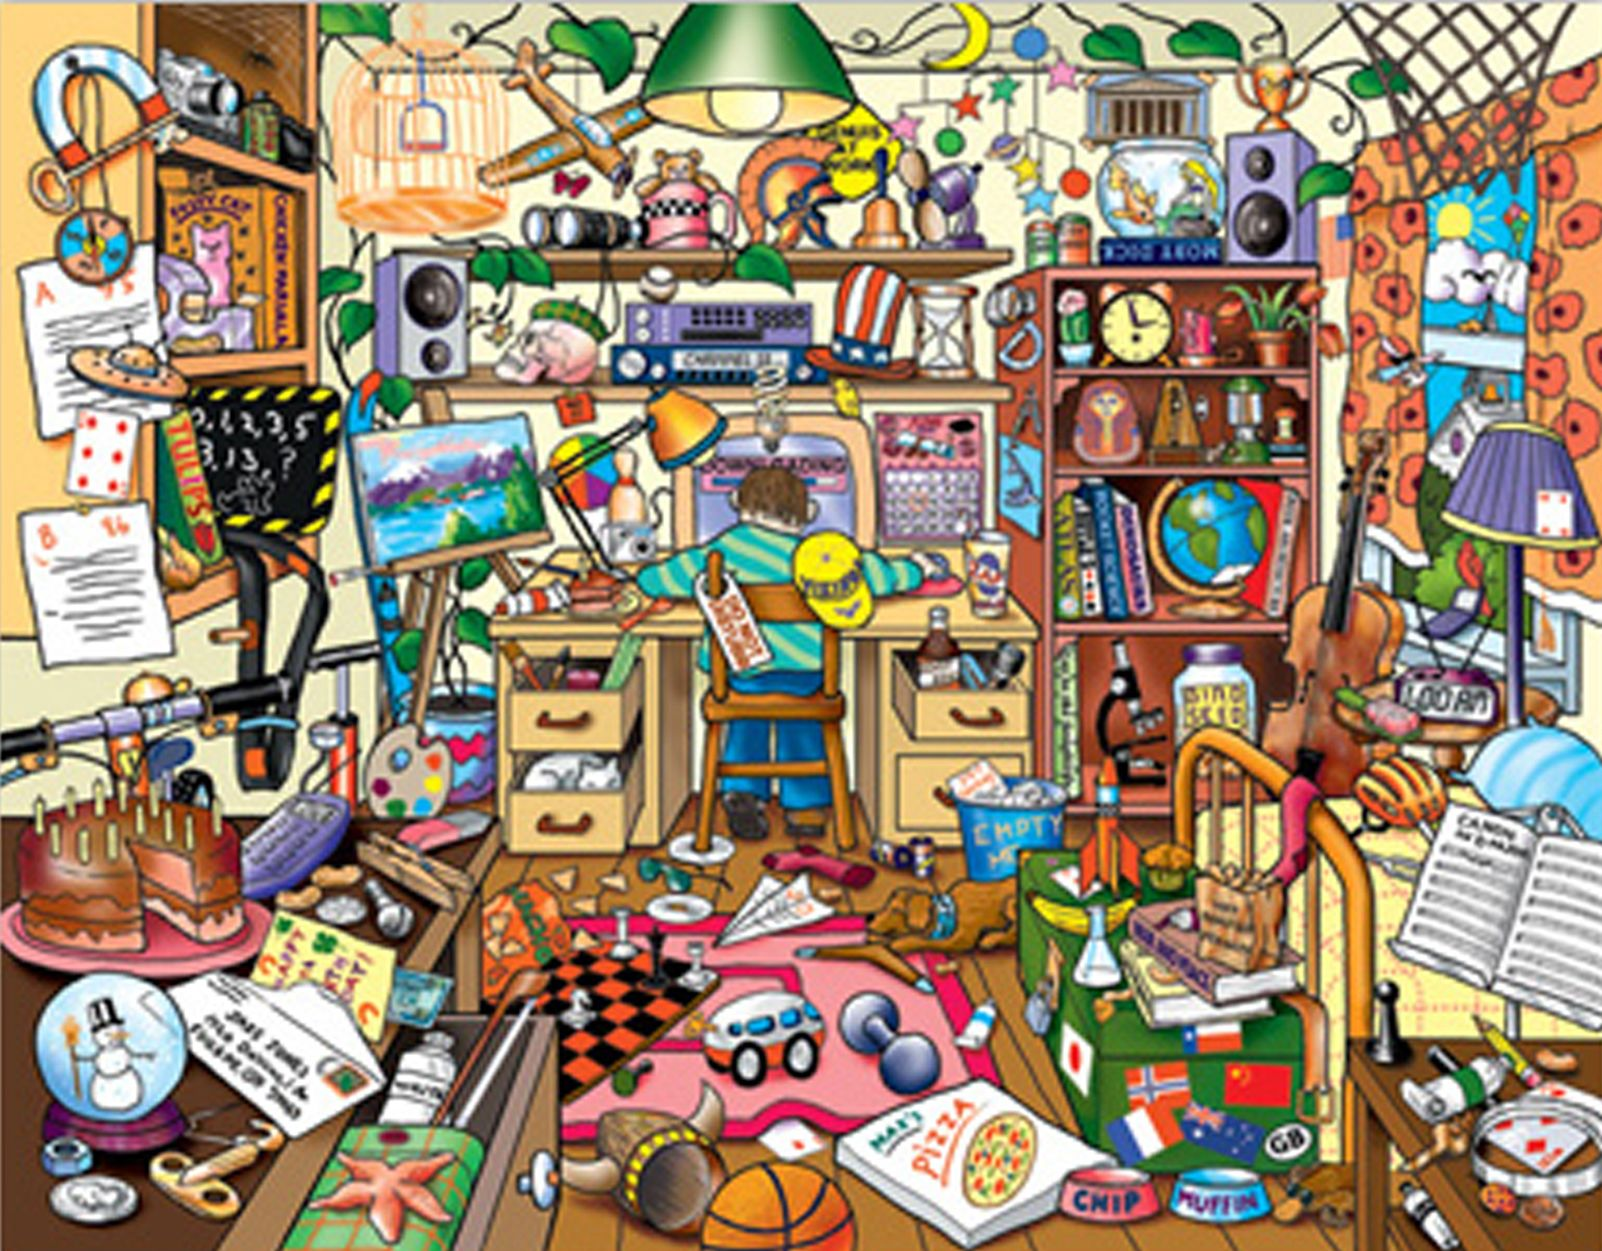 Messy bedroom clipart graphic royalty free stock Pin by Flavia Fabian on To Learn - Kids Set   Messy house ... graphic royalty free stock